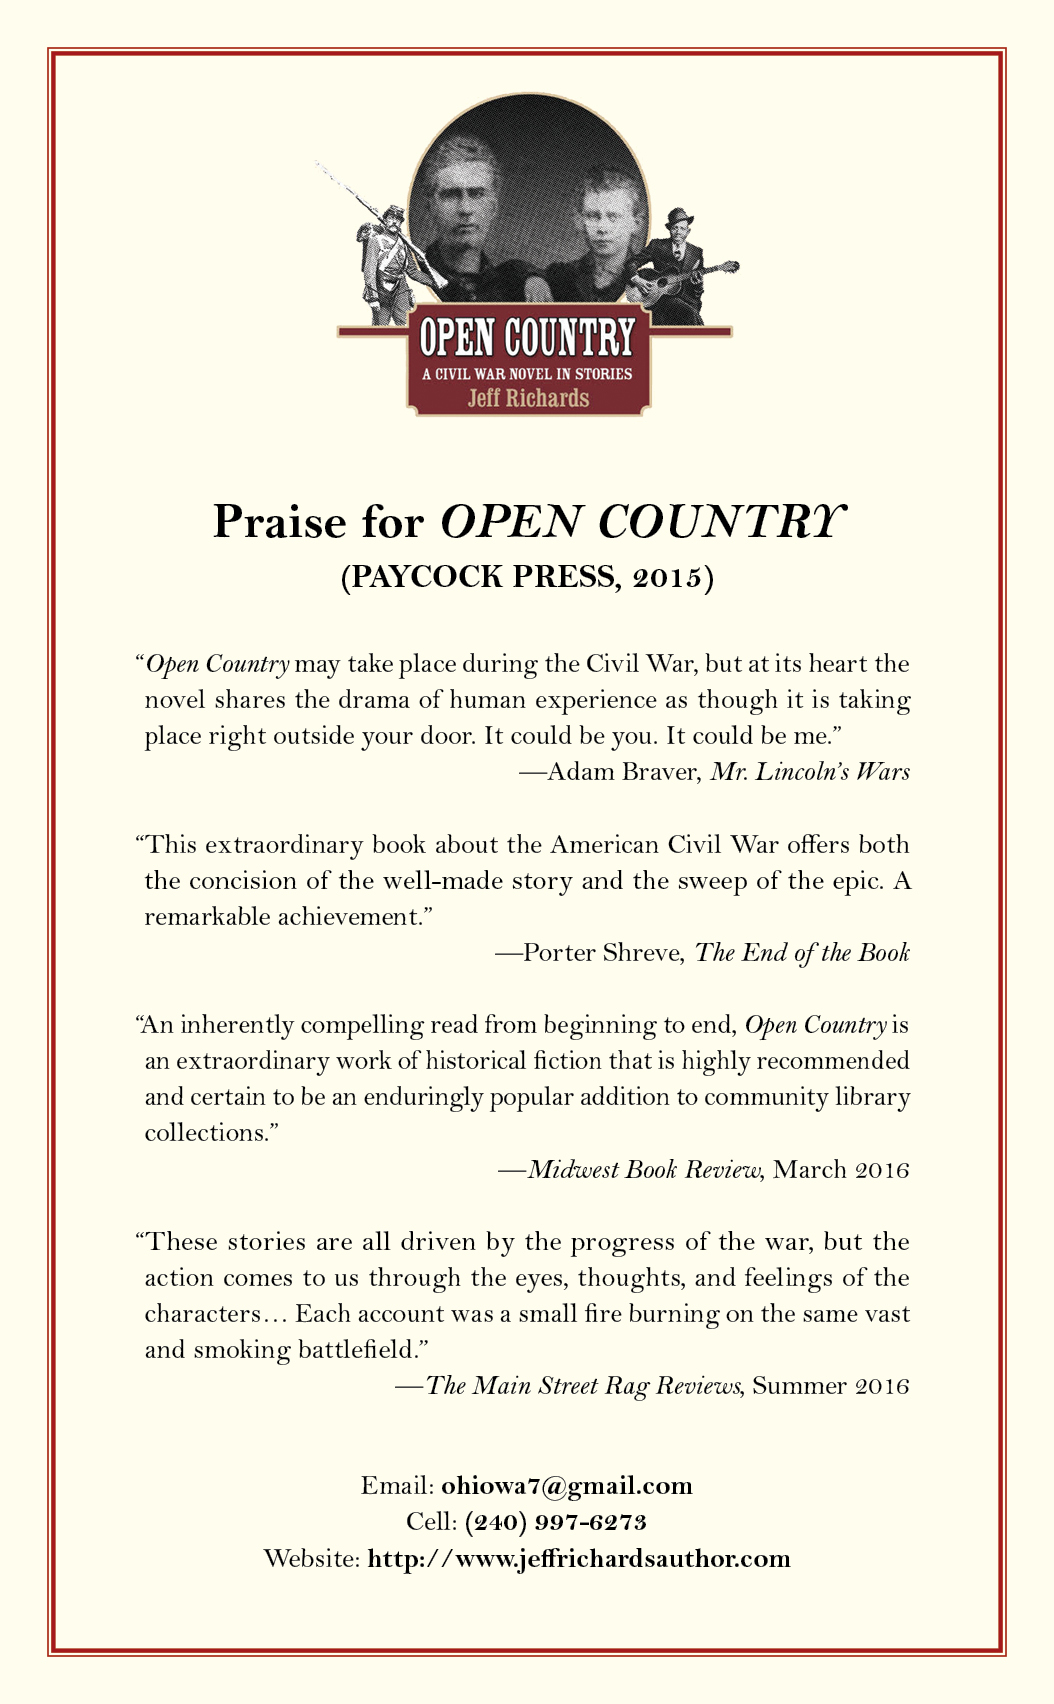 Postcard for Jeff Richard's OPEN COUNTRY